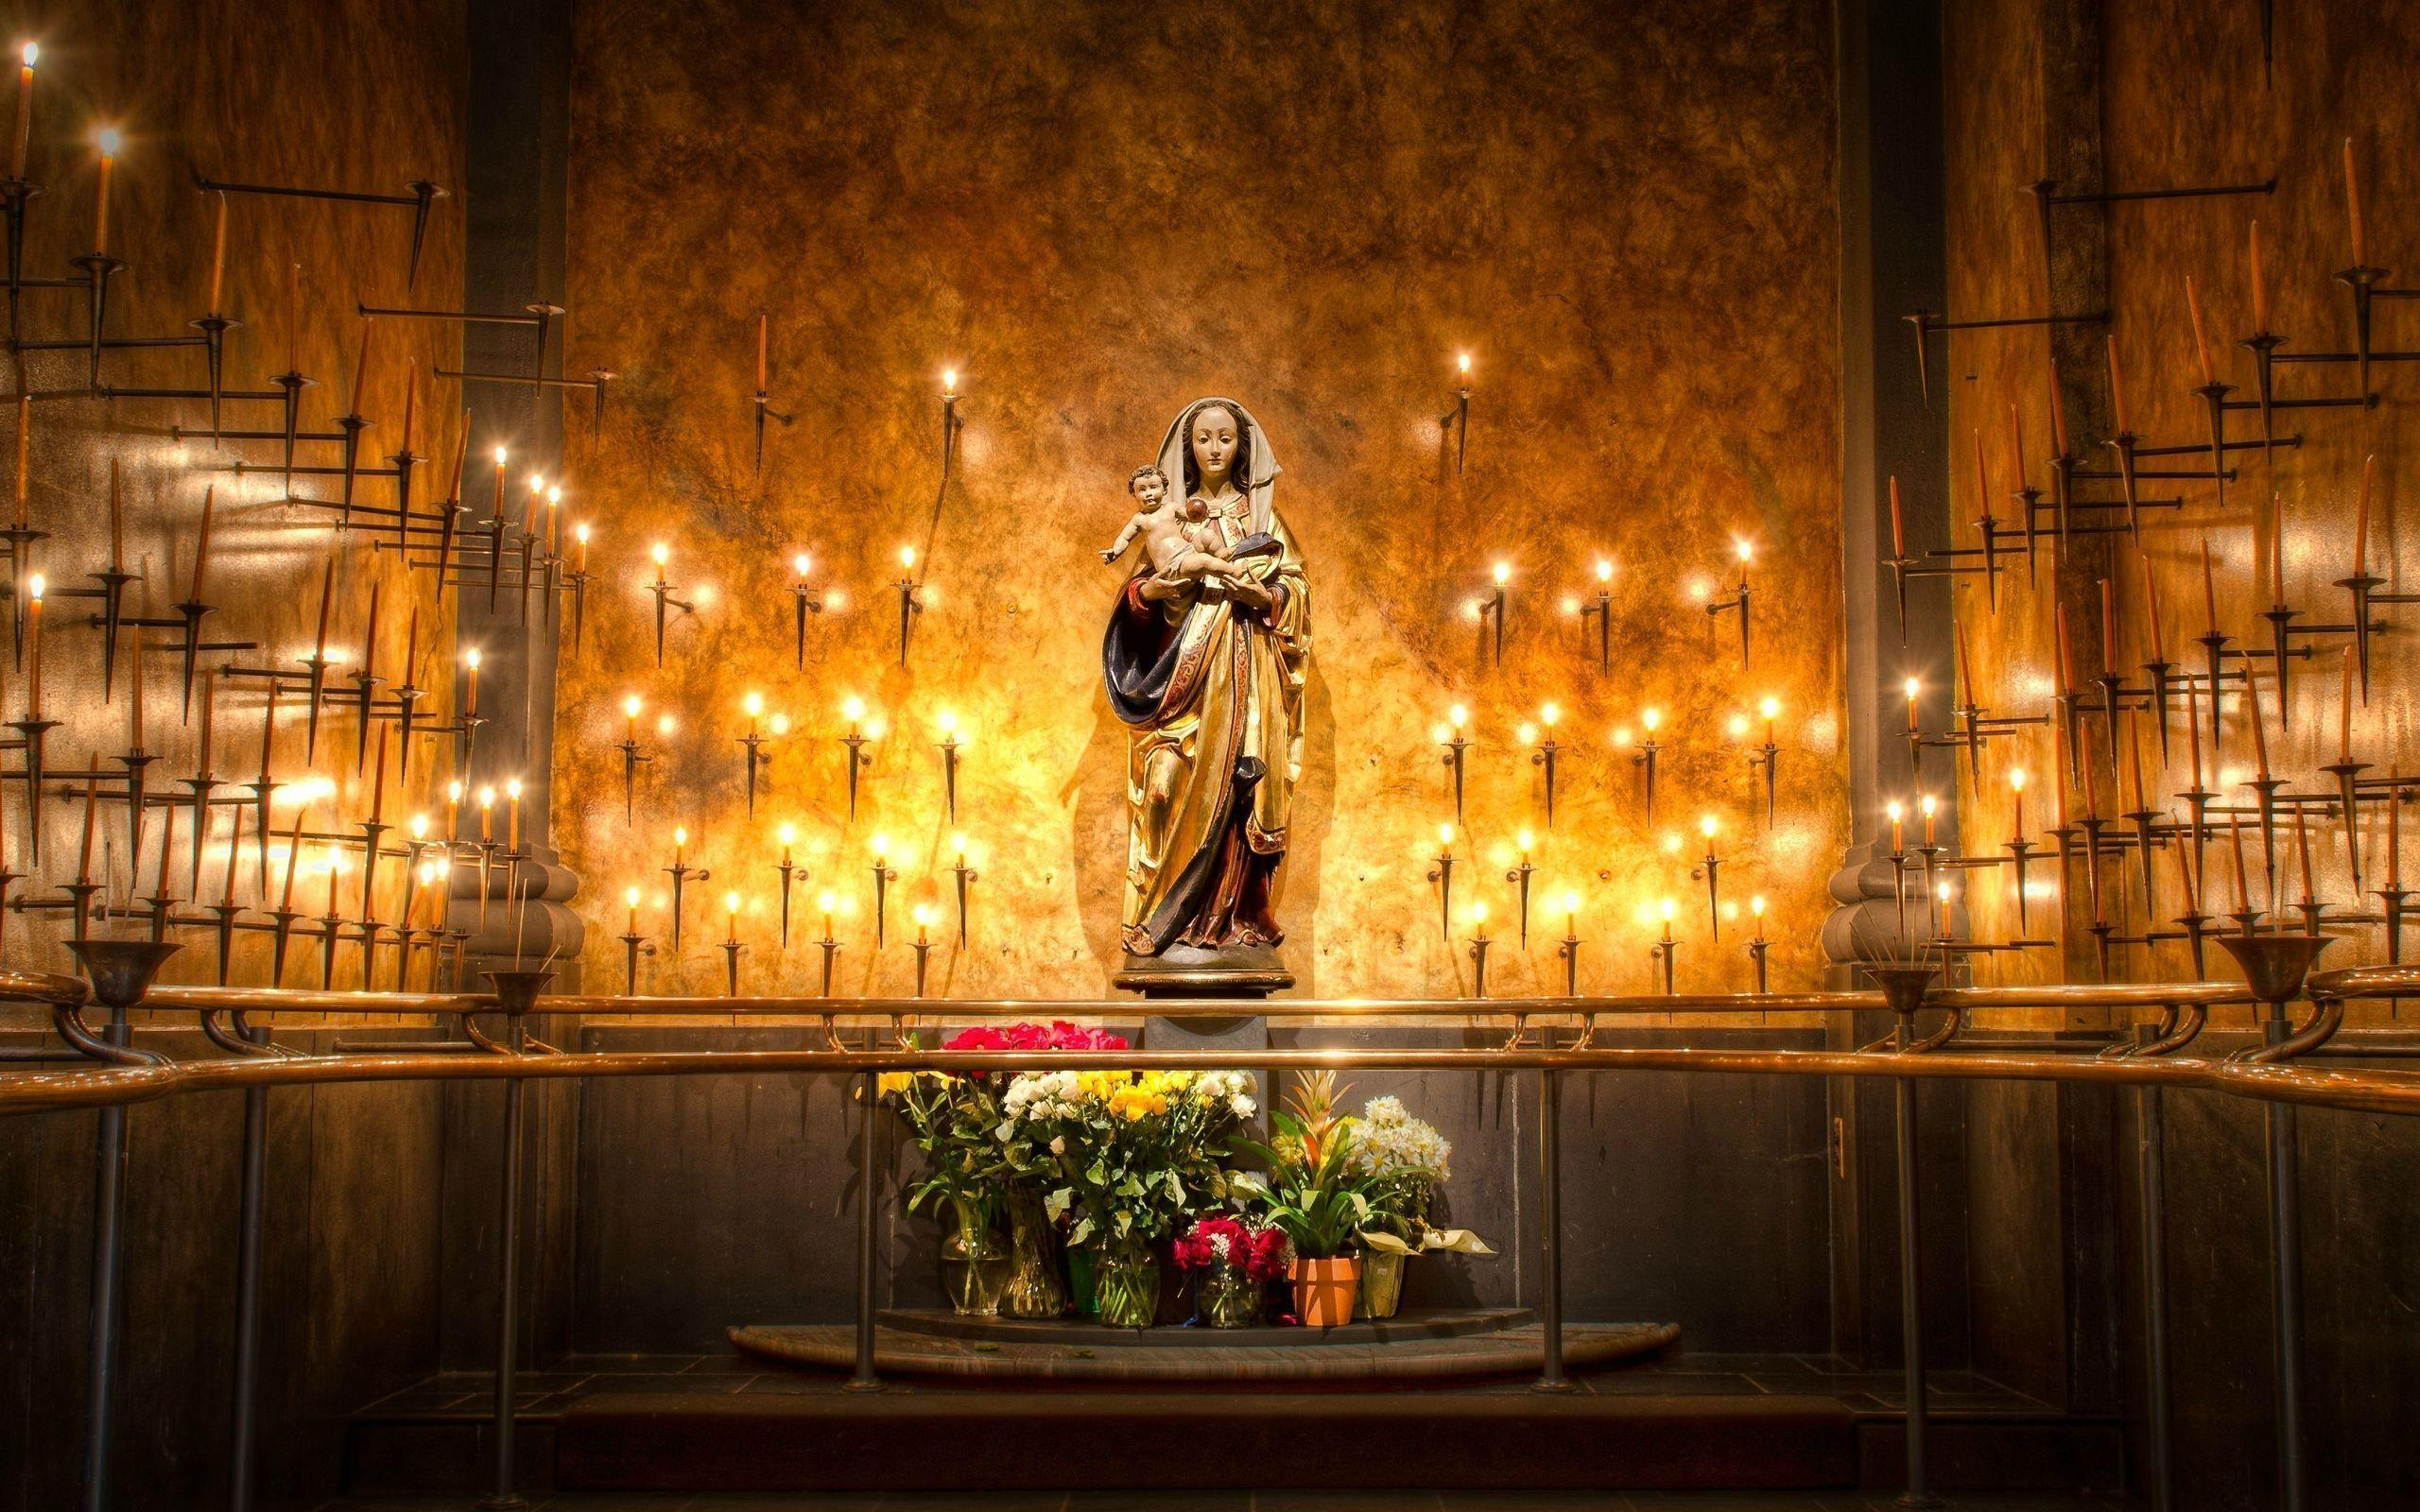 Can We Get A Catholic Wallpaper Thread Going Catholicism